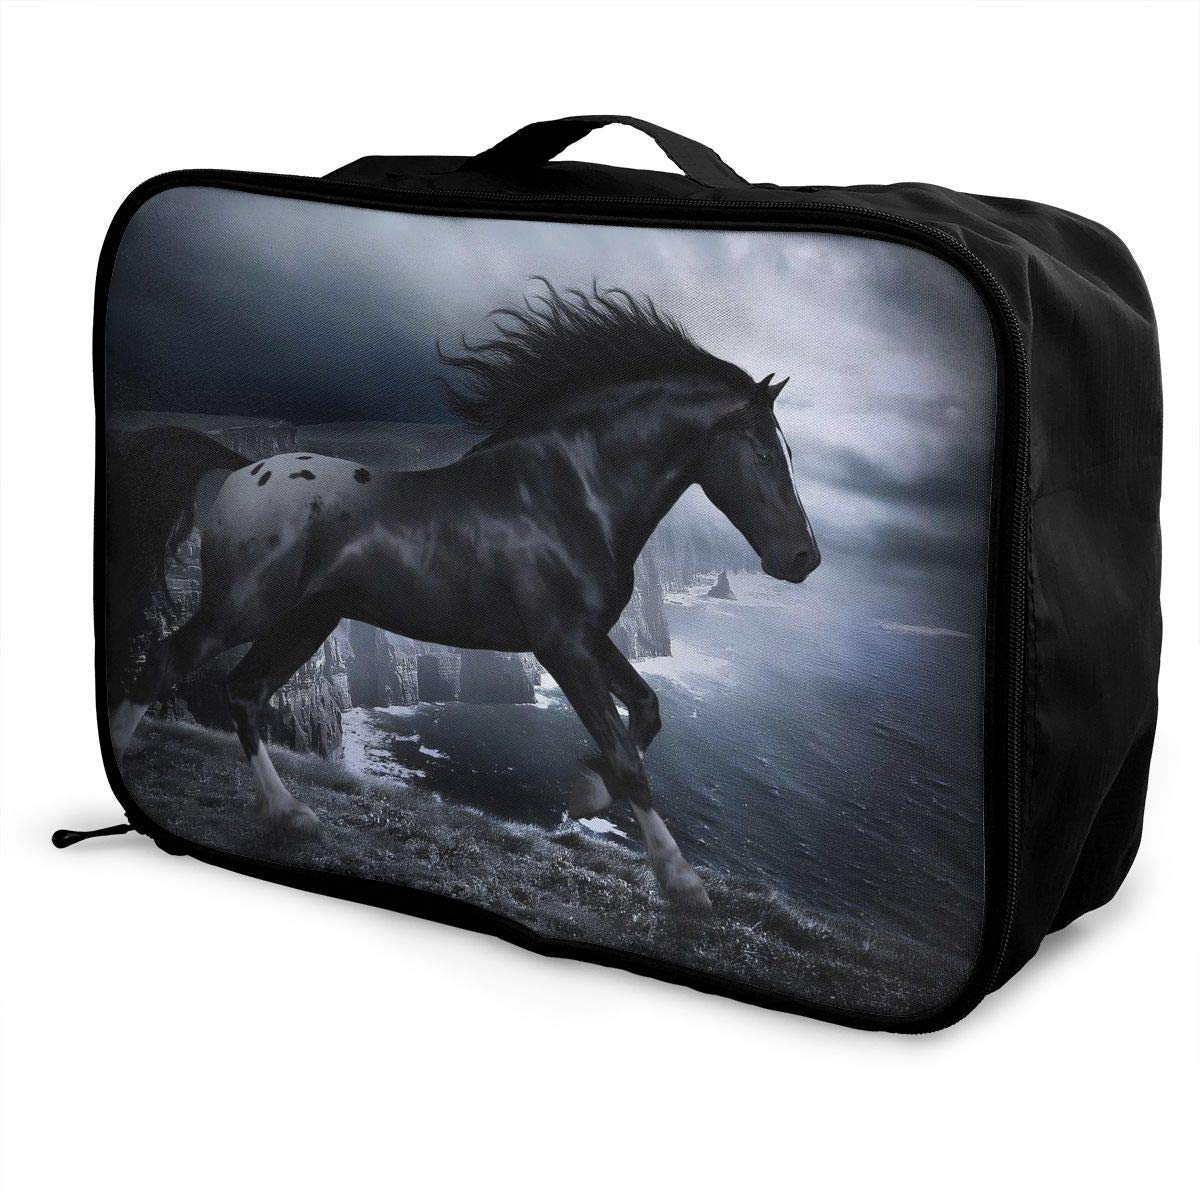 Travel Luggage Duffle Bag Lightweight Portable Handbag Cool Black Horse Large Capacity Waterproof Foldable Storage Tote